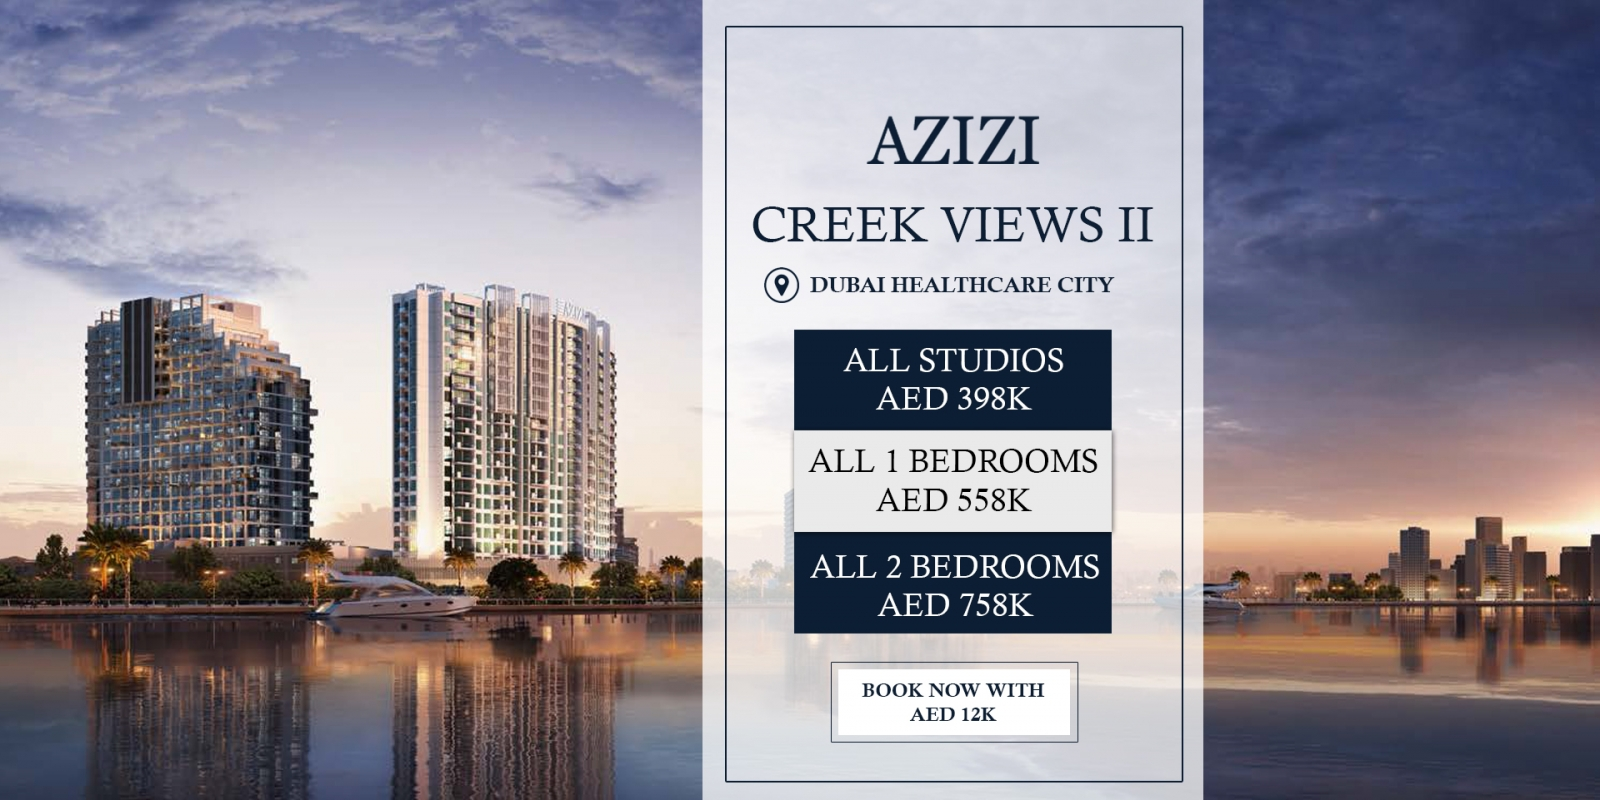 Azizi Creek Views II Dubai